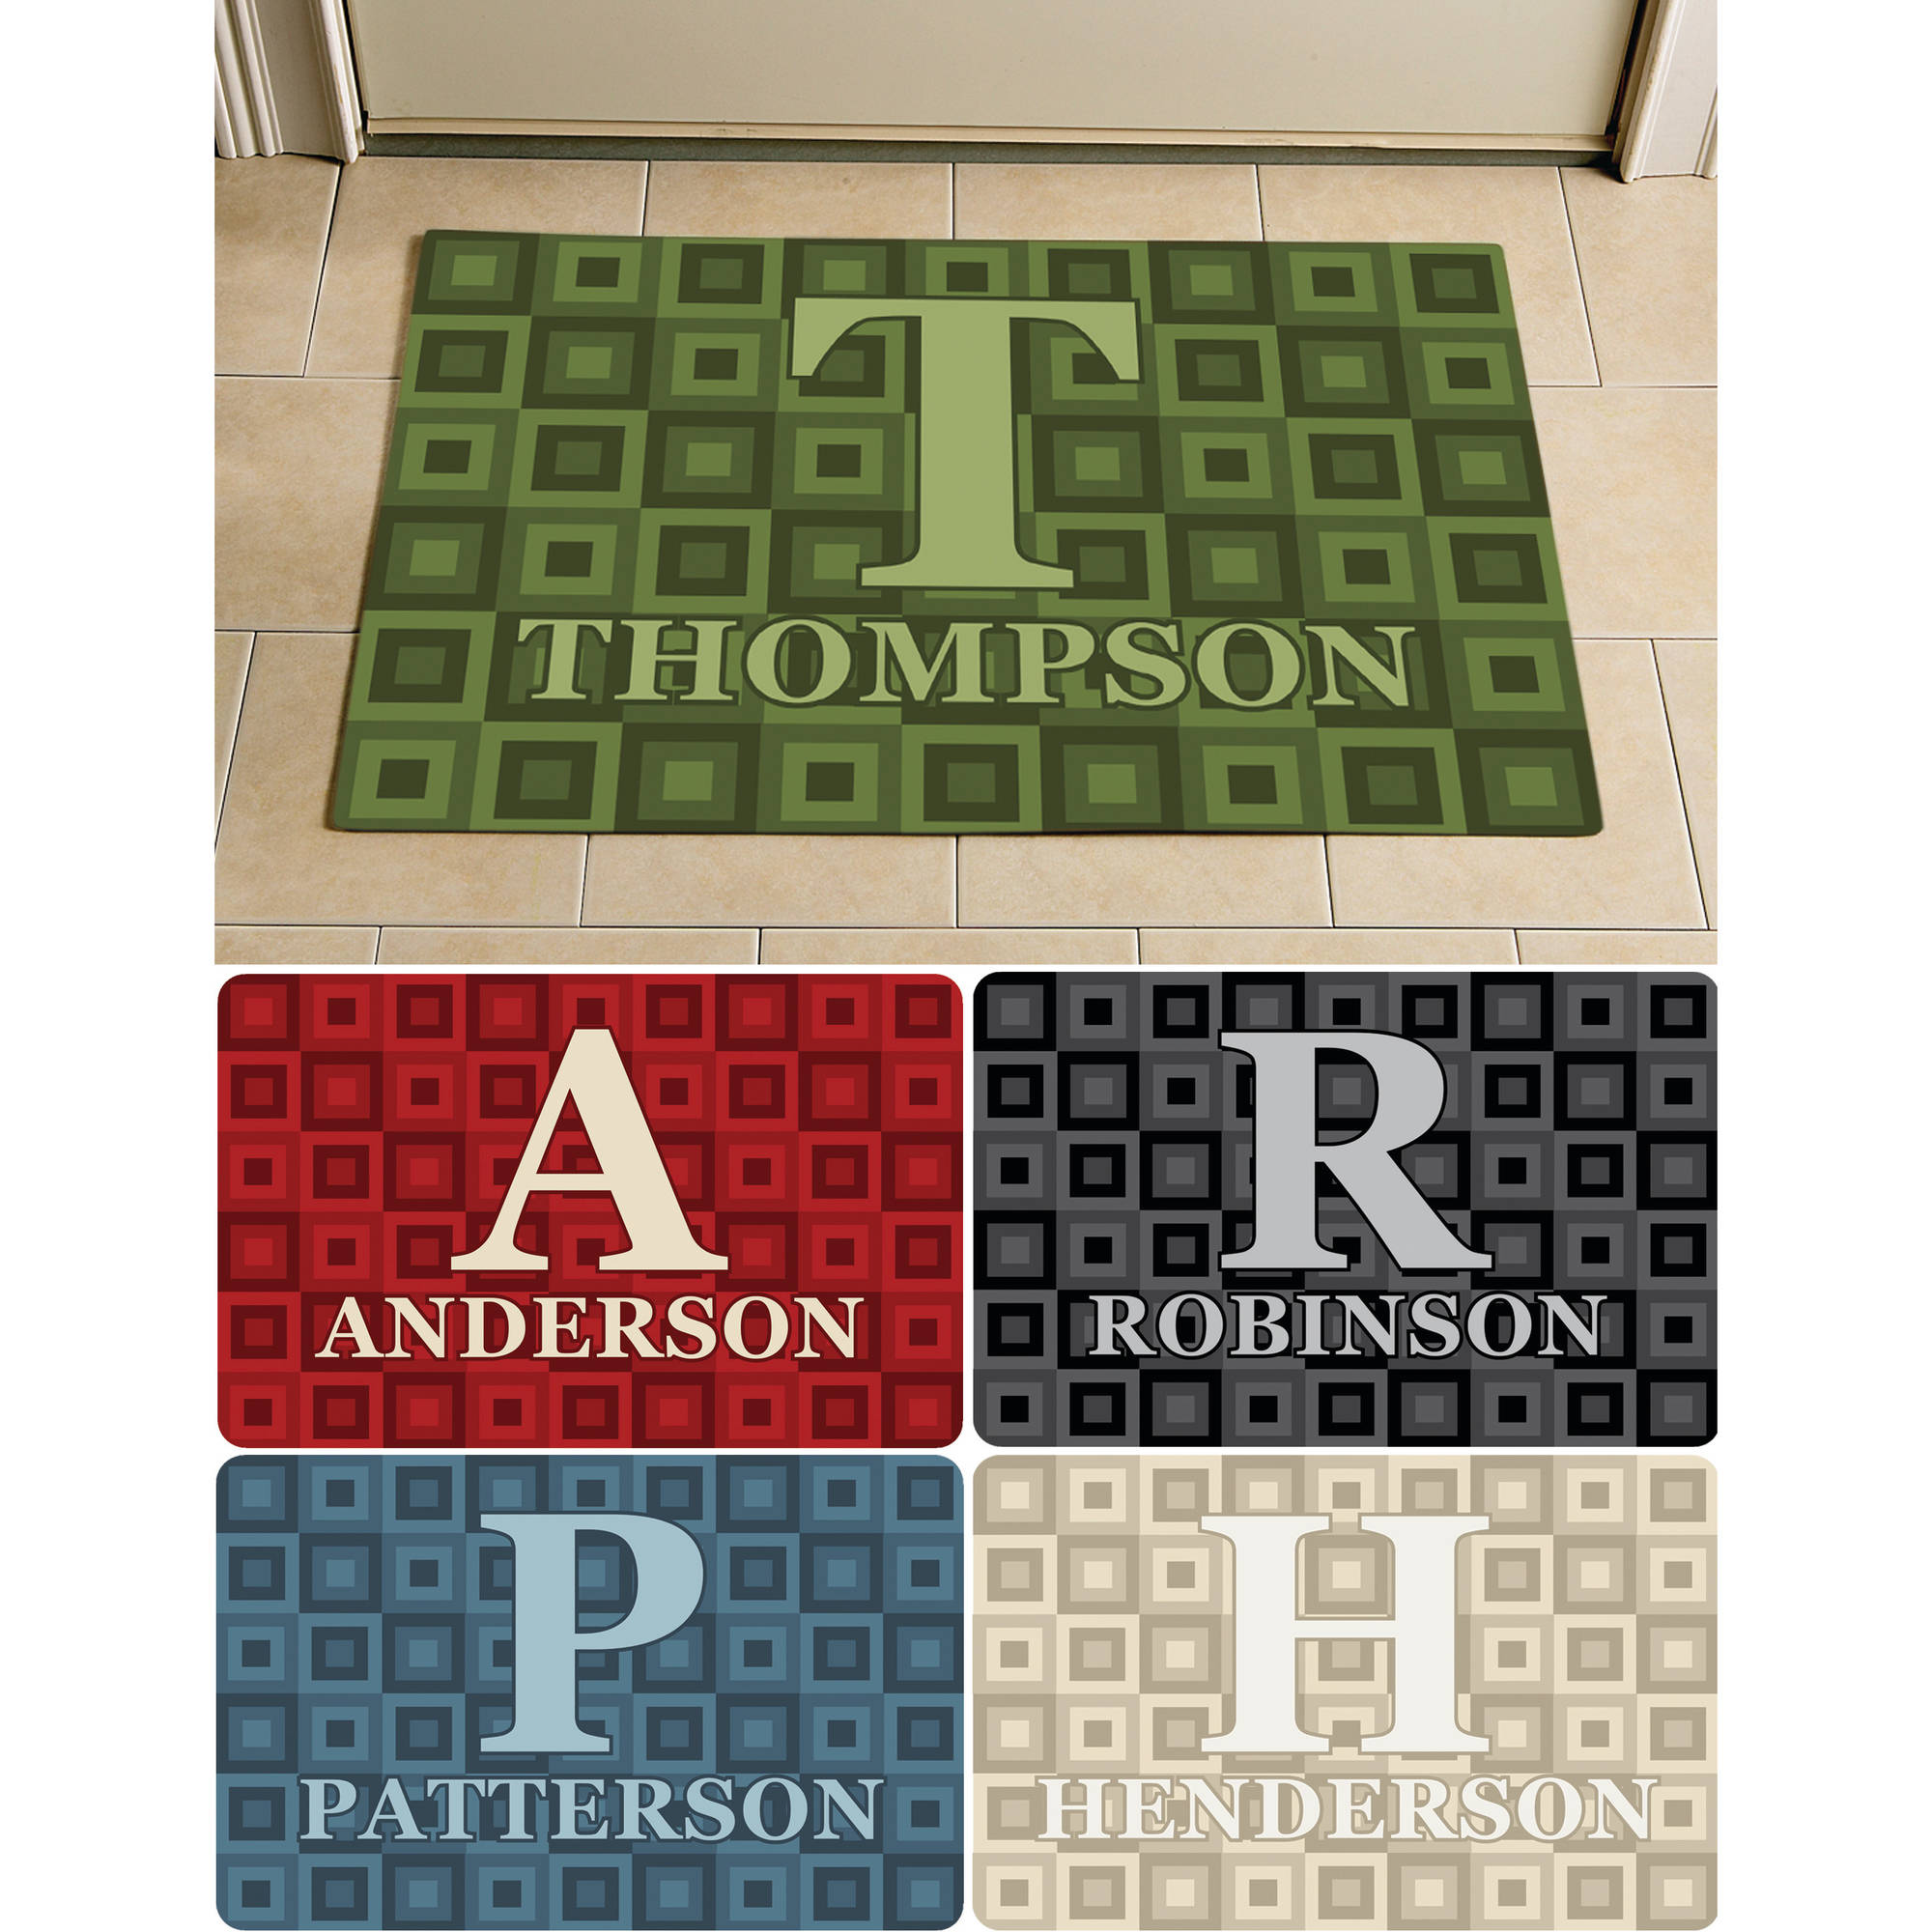 "Personalized Square Initial and Name Doormat, 24"" x 36"", Available in Multiple Colors"